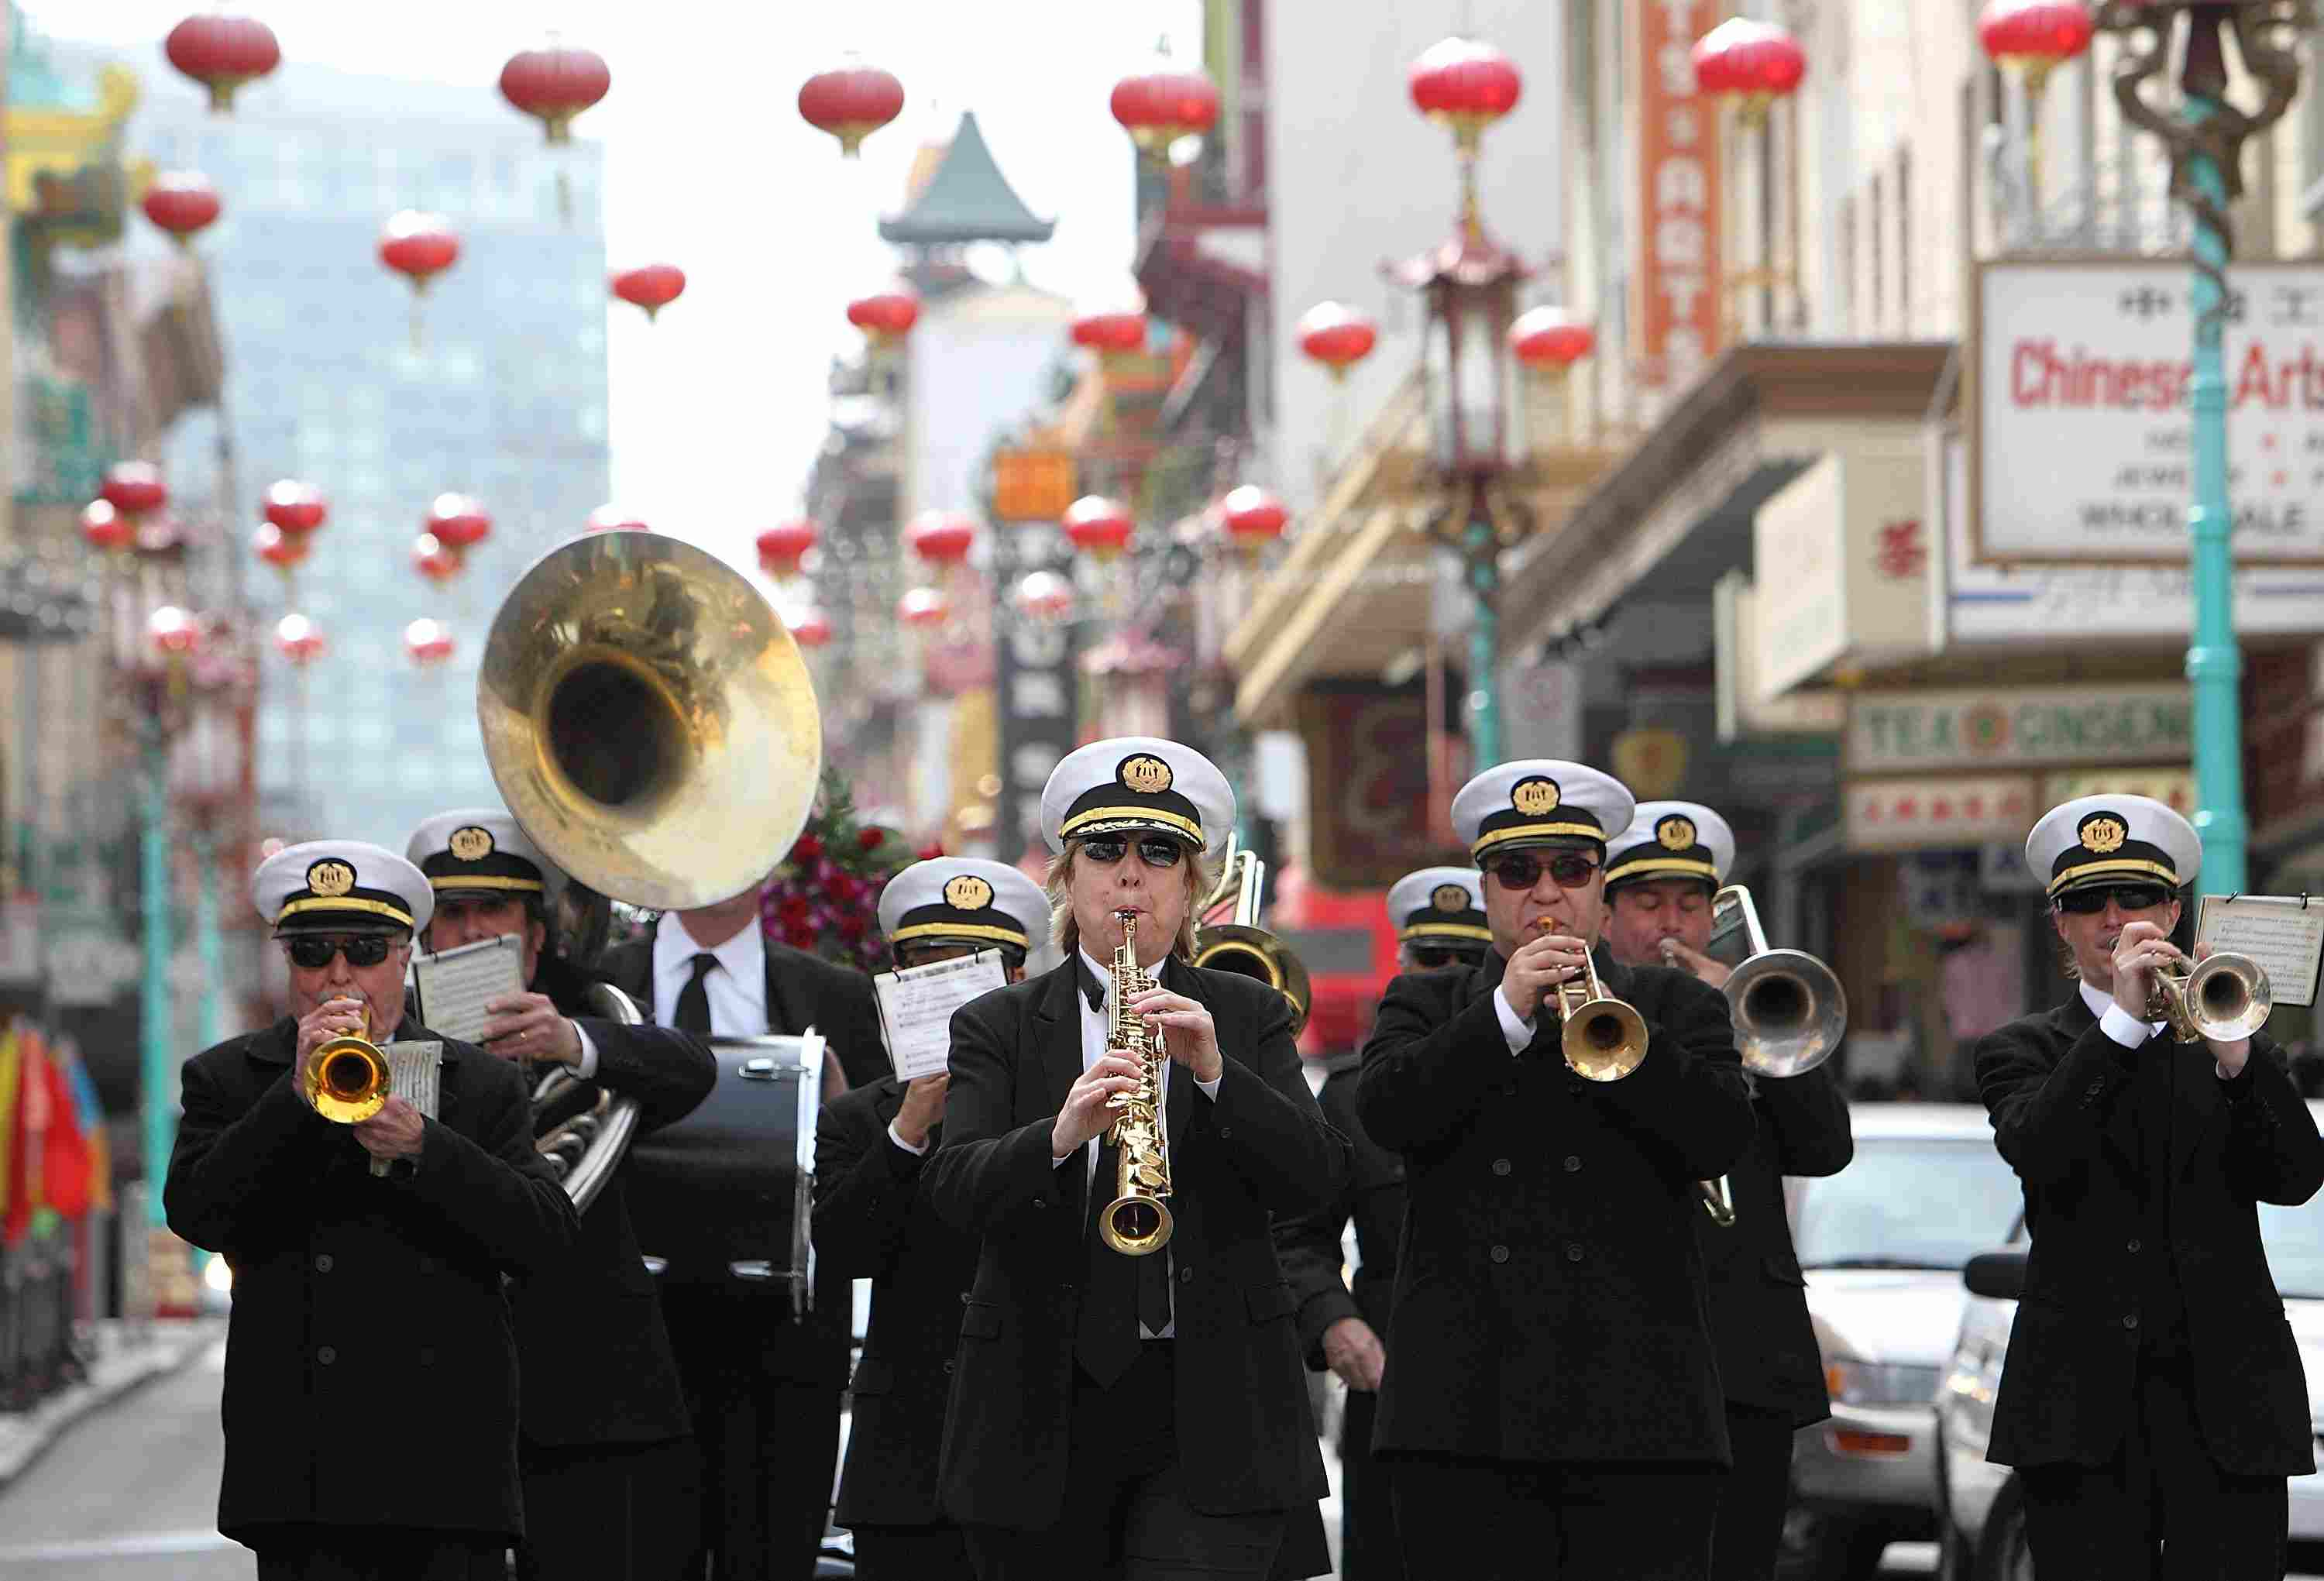 San Francisco Chinatown Funeral Processions Honor The Dead